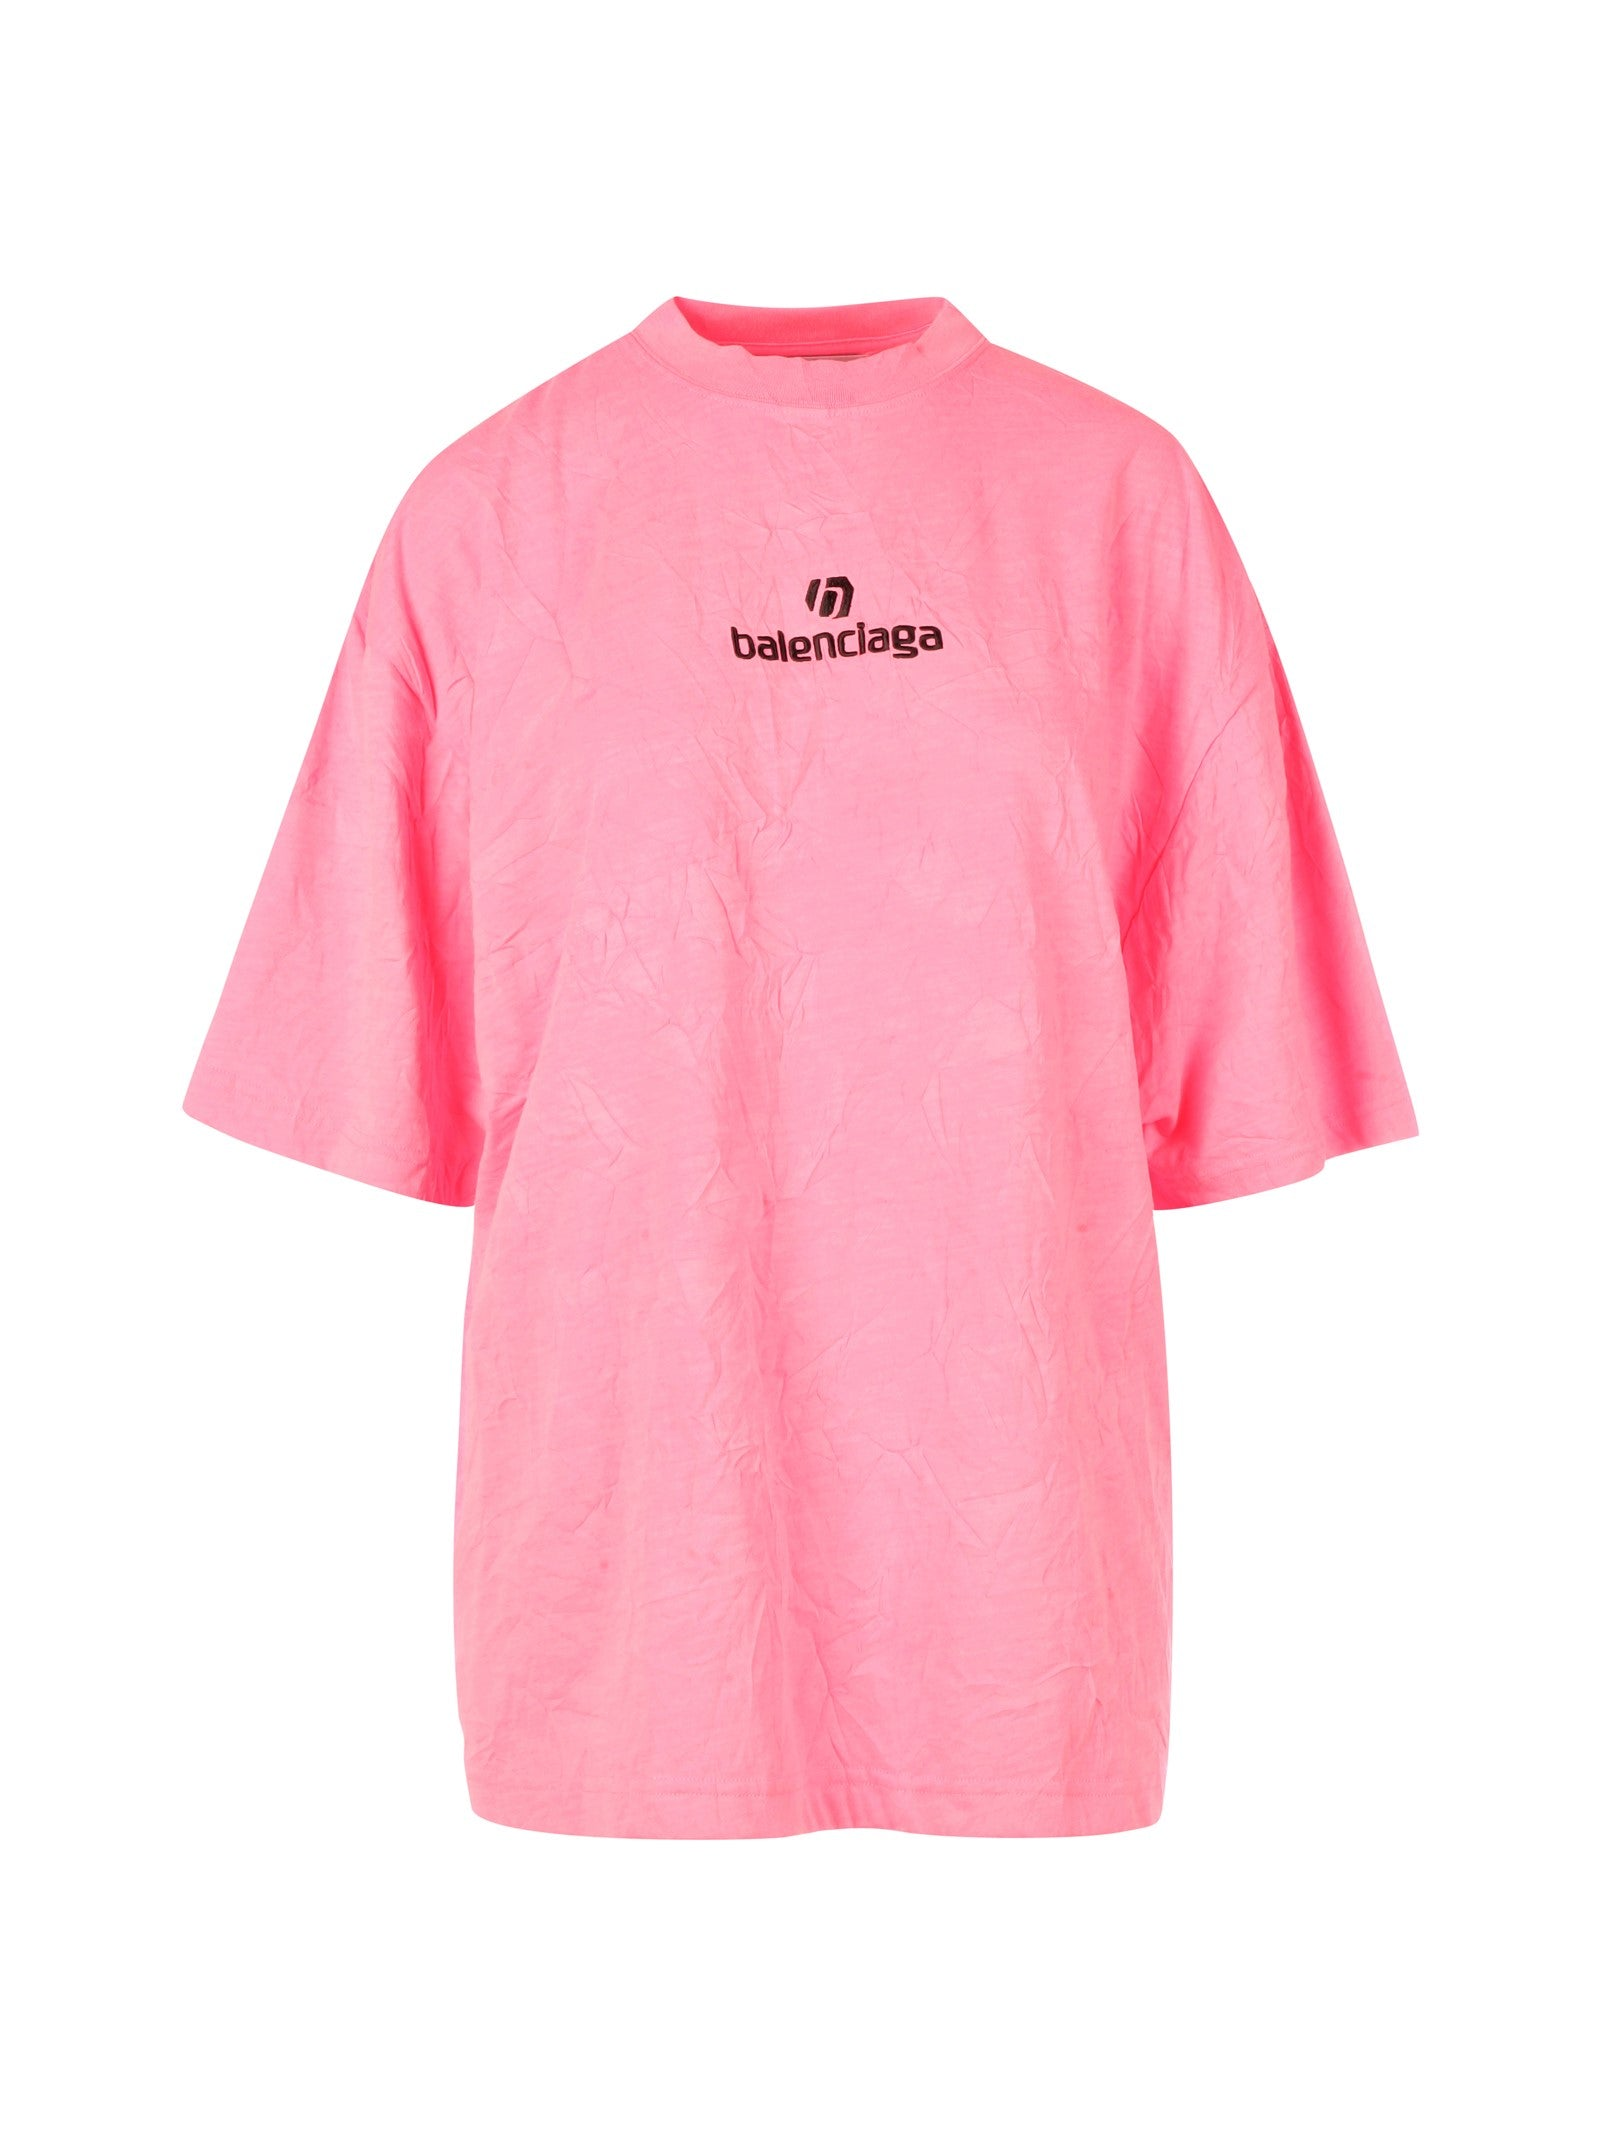 embroidered logo oversized T-shirt